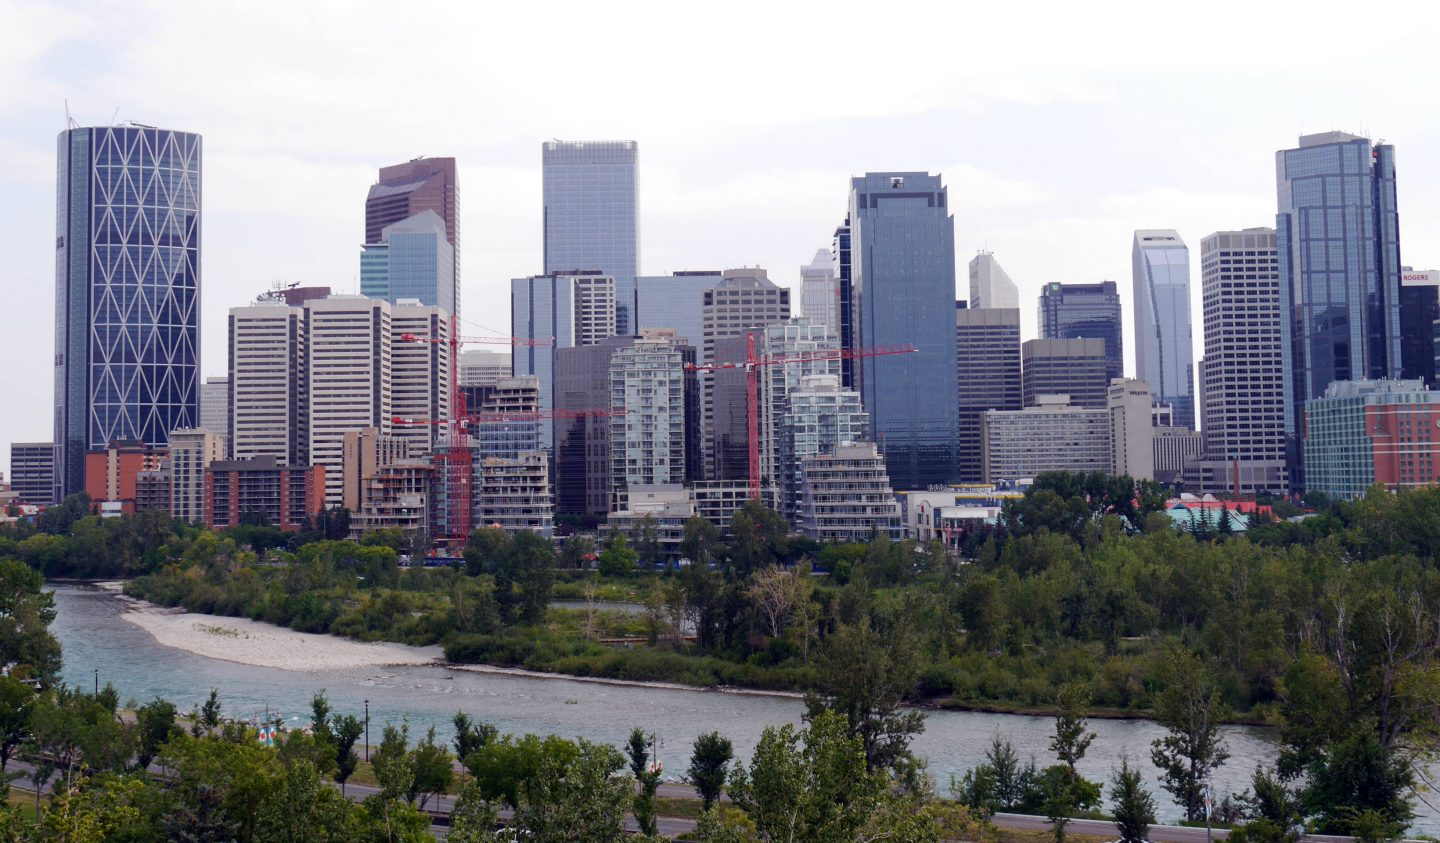 Calgary – The next Road Trip